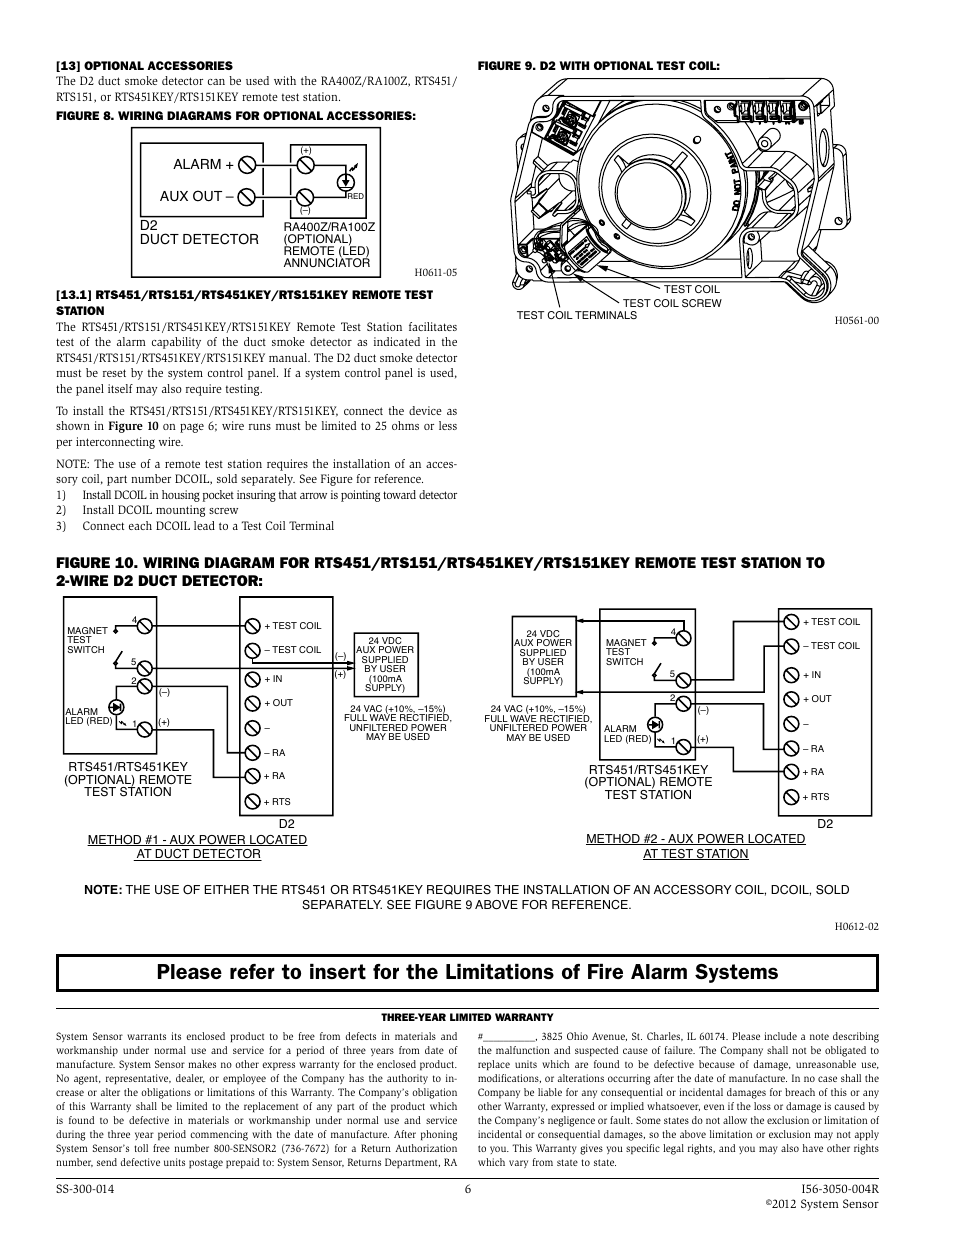 system sensor d2 page6 duct detector wiring diagram silent knight wiring diagram \u2022 free system sensor dnr wiring diagram at edmiracle.co